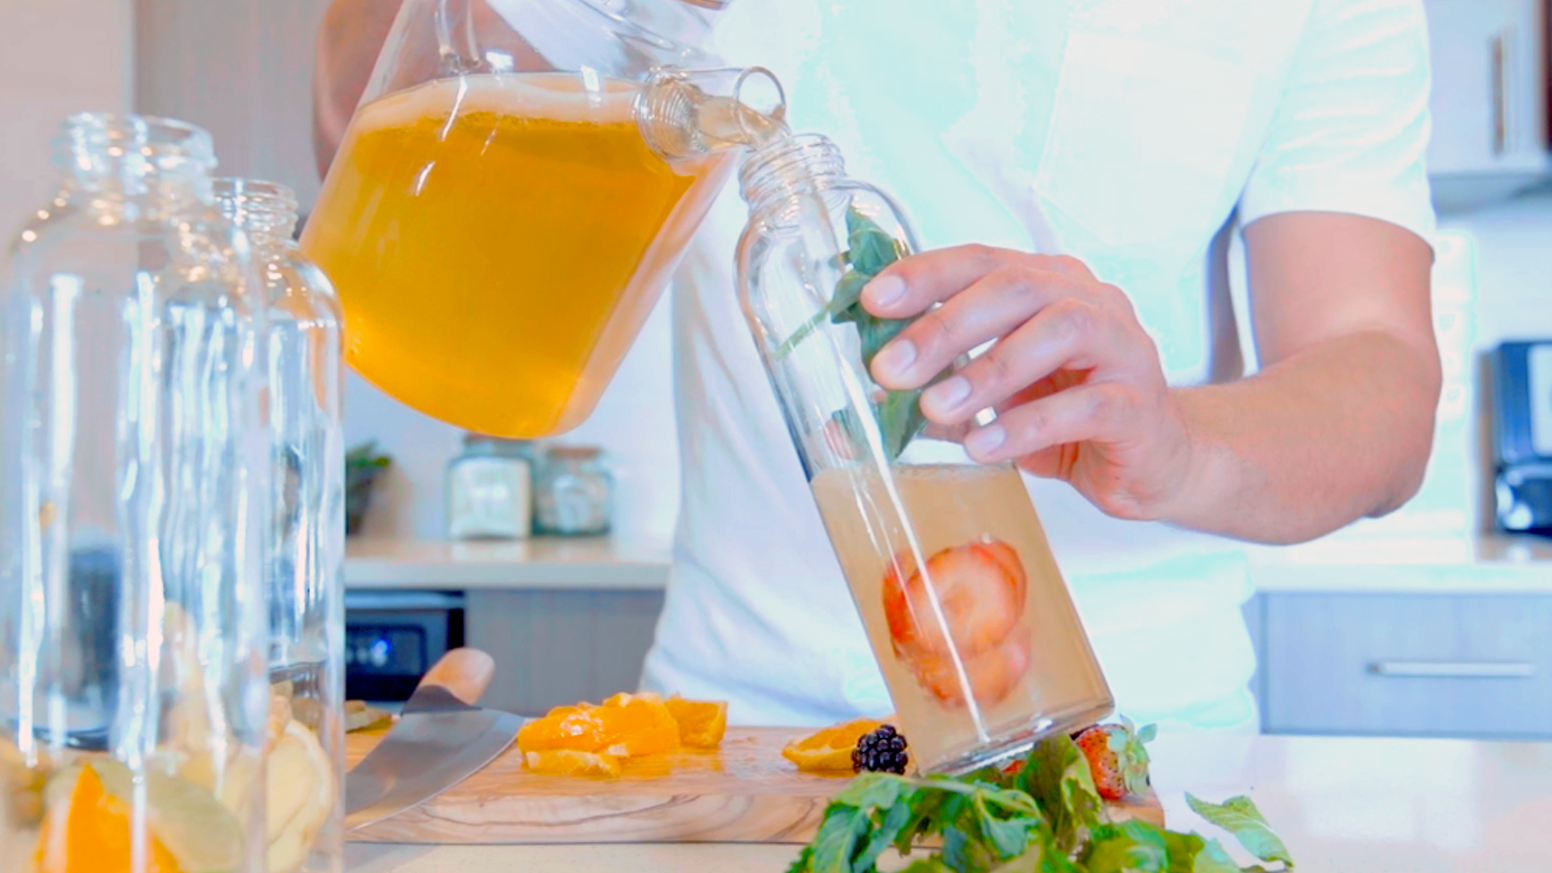 The Easiest Way to Make Real Kombucha at Home